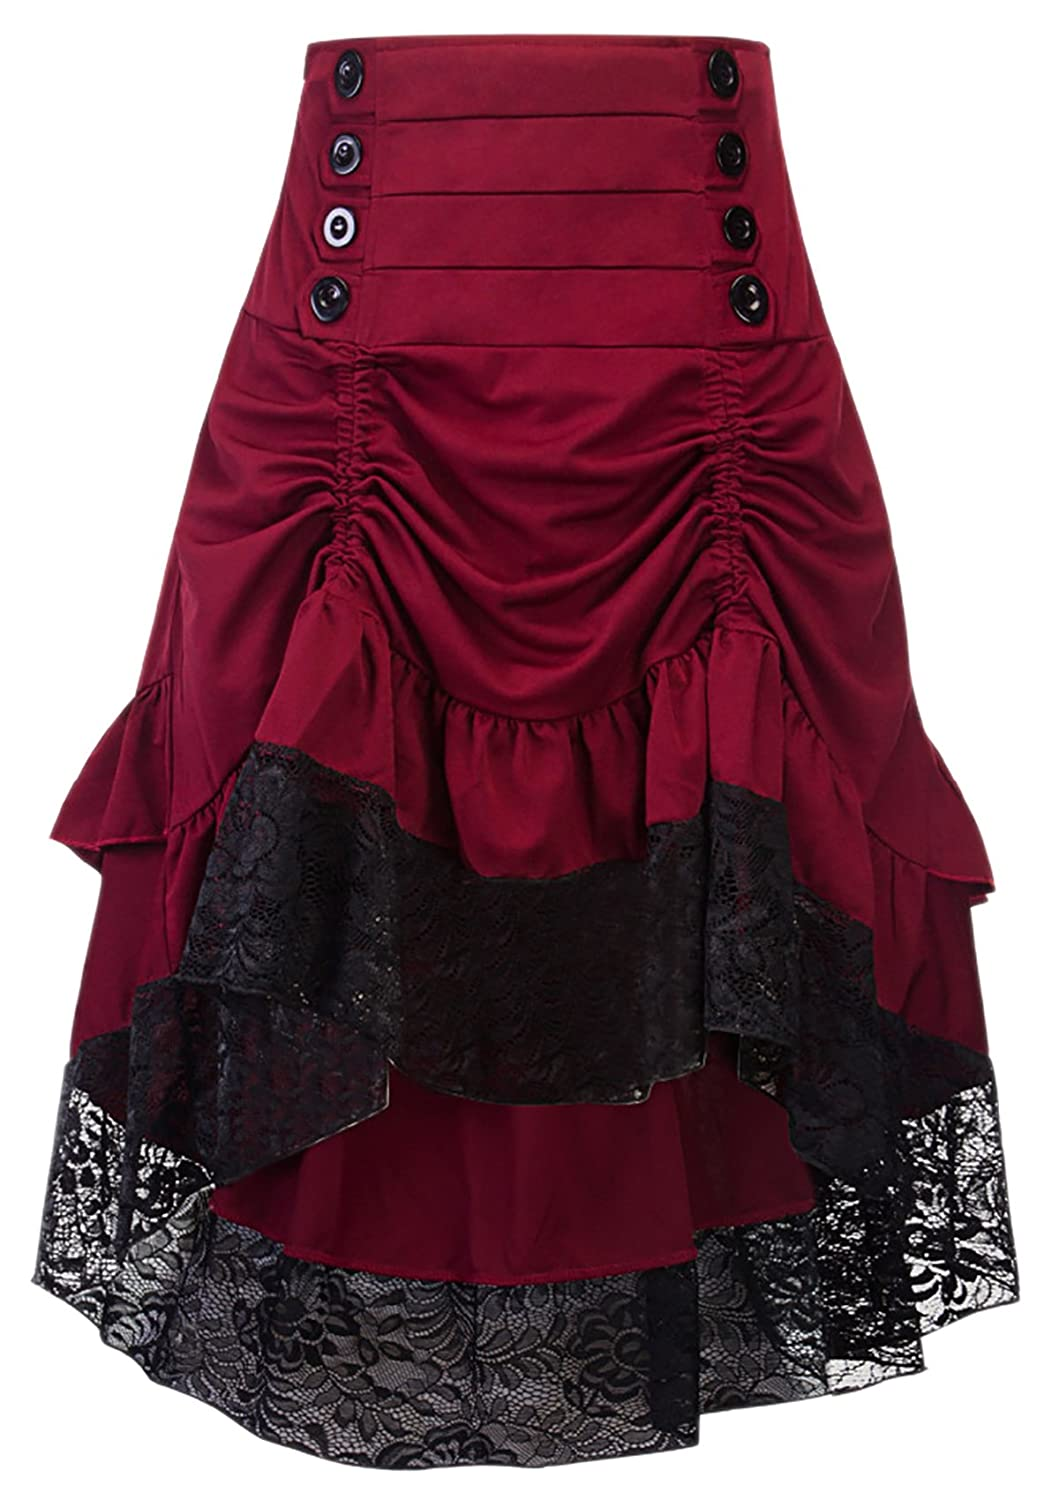 82cb85fbcffb Gothic steampunk style skirt, made by linen fabric, with wide asymmetrical  ruffle bottom, which can fit different body type, lace trim overlay the  whole ...